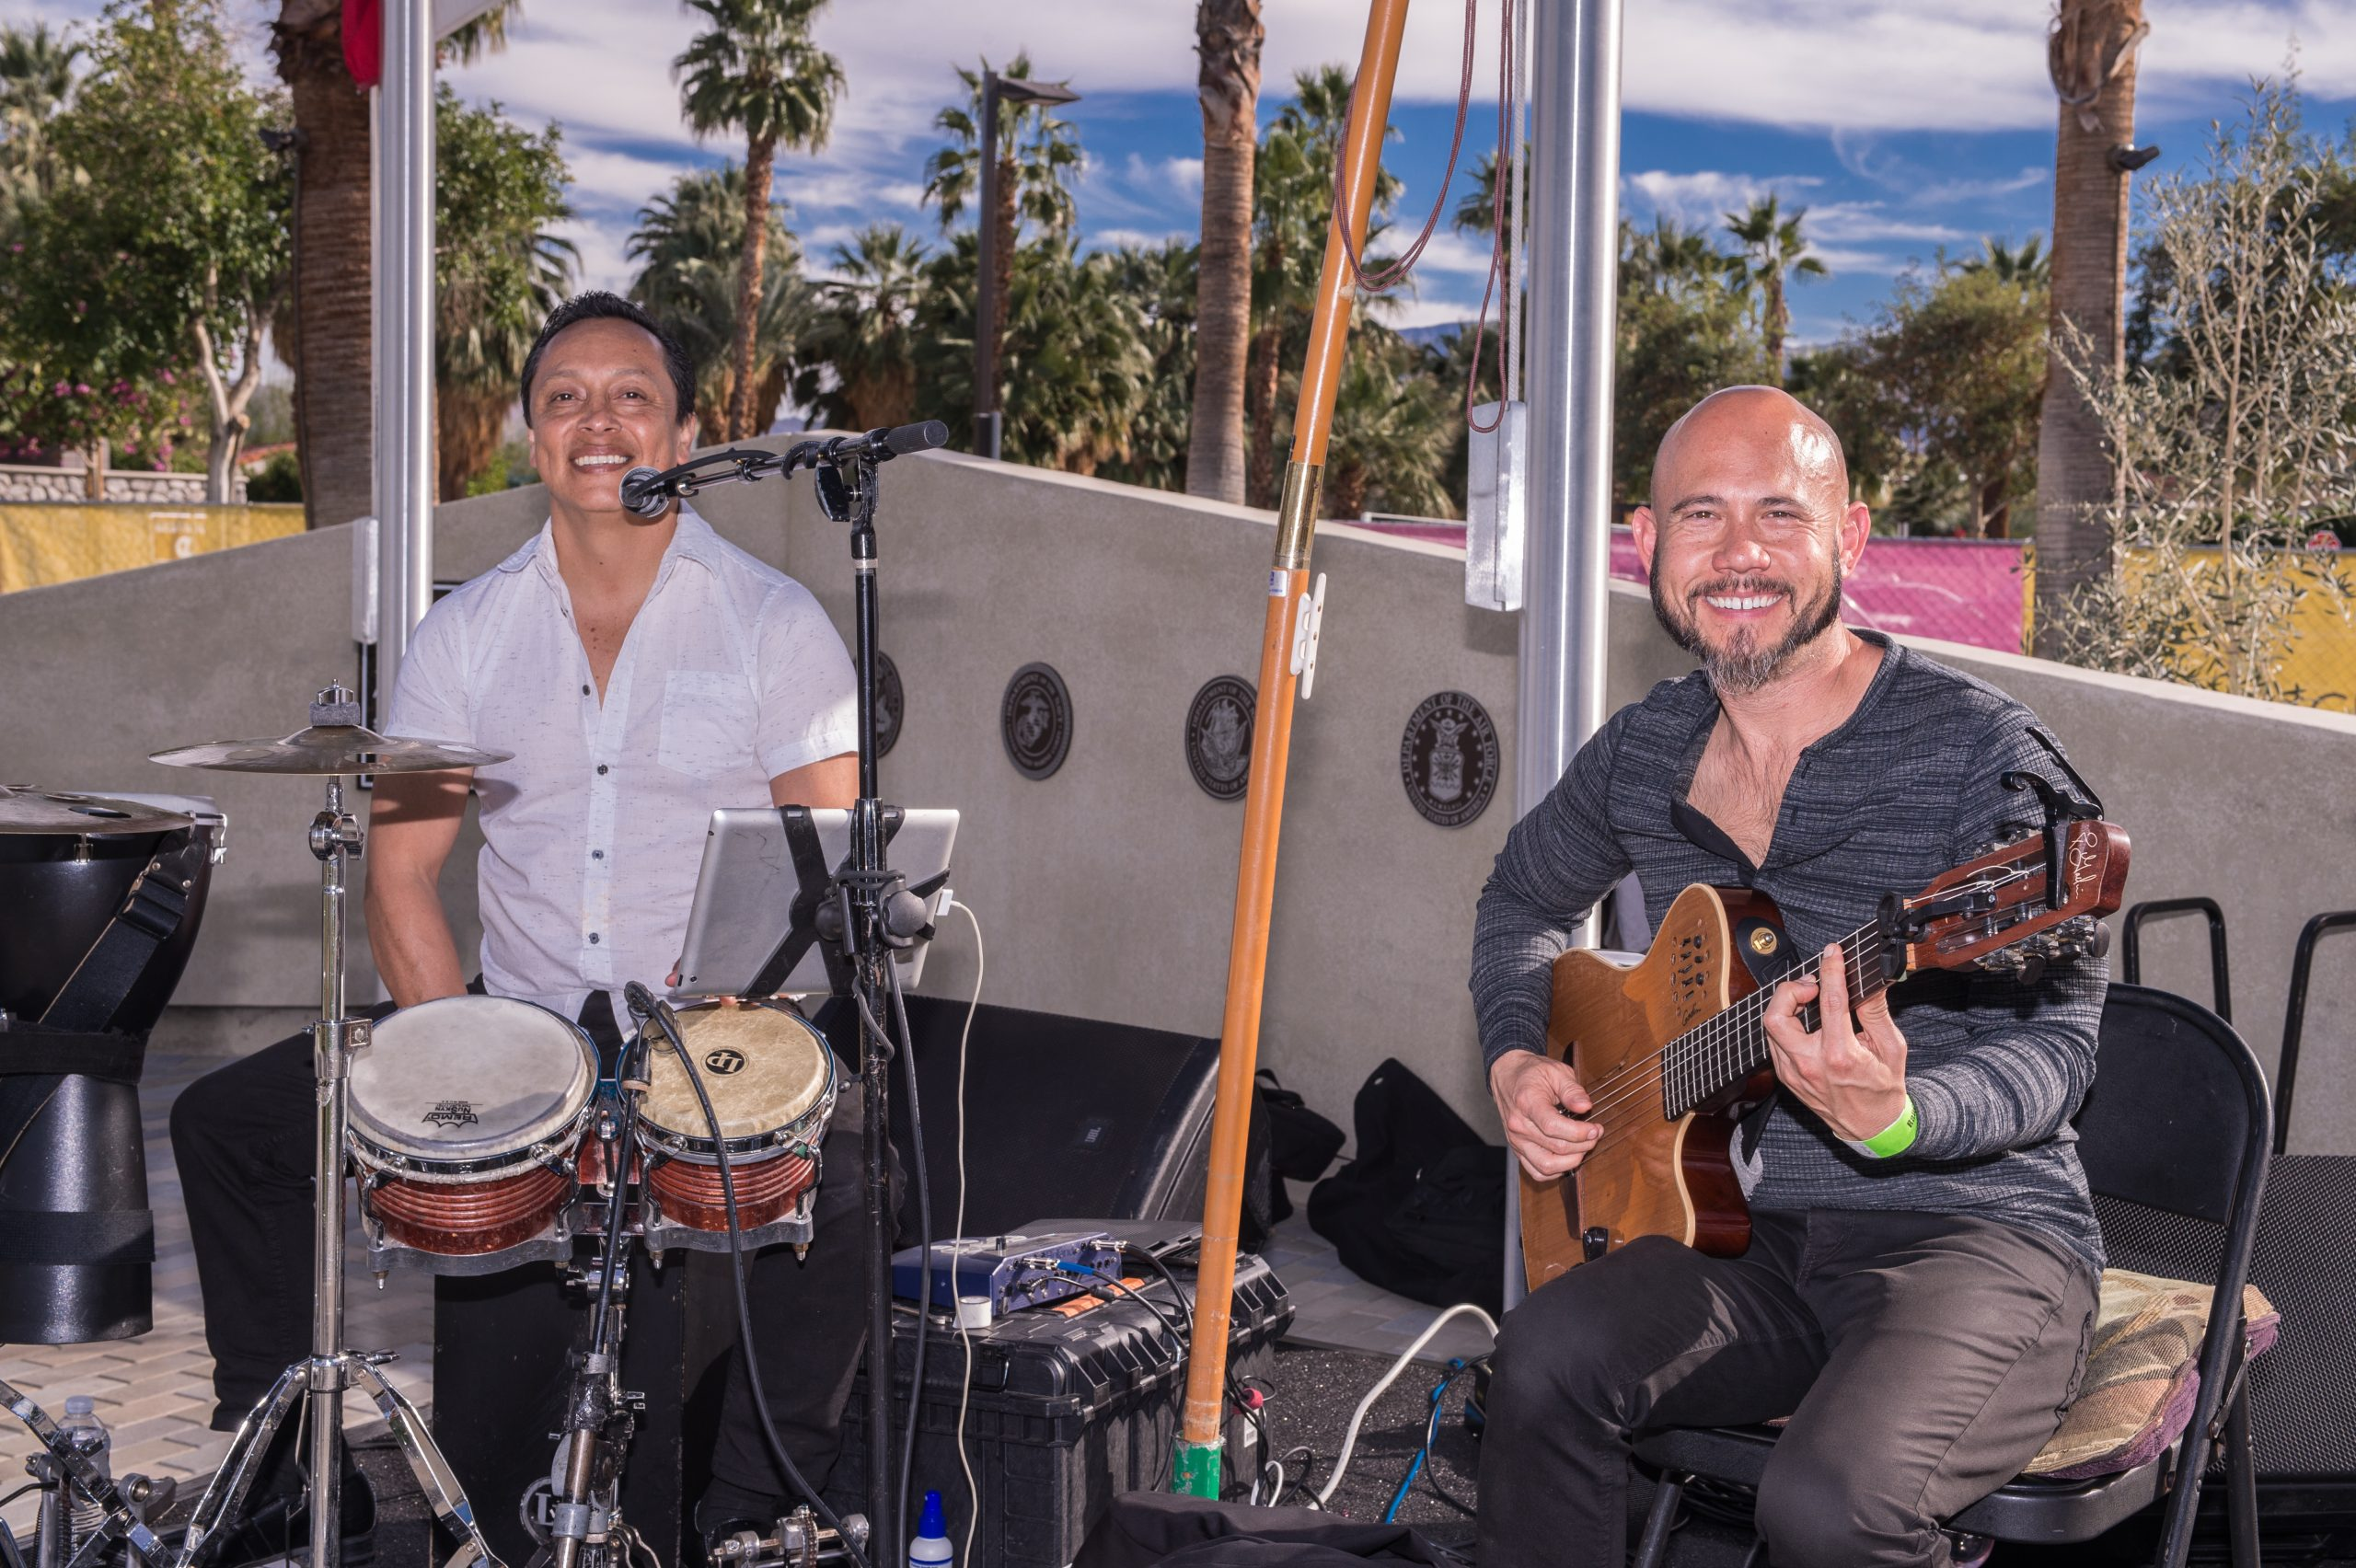 The Coachella Valley's premiere wine festival includes some great live performances